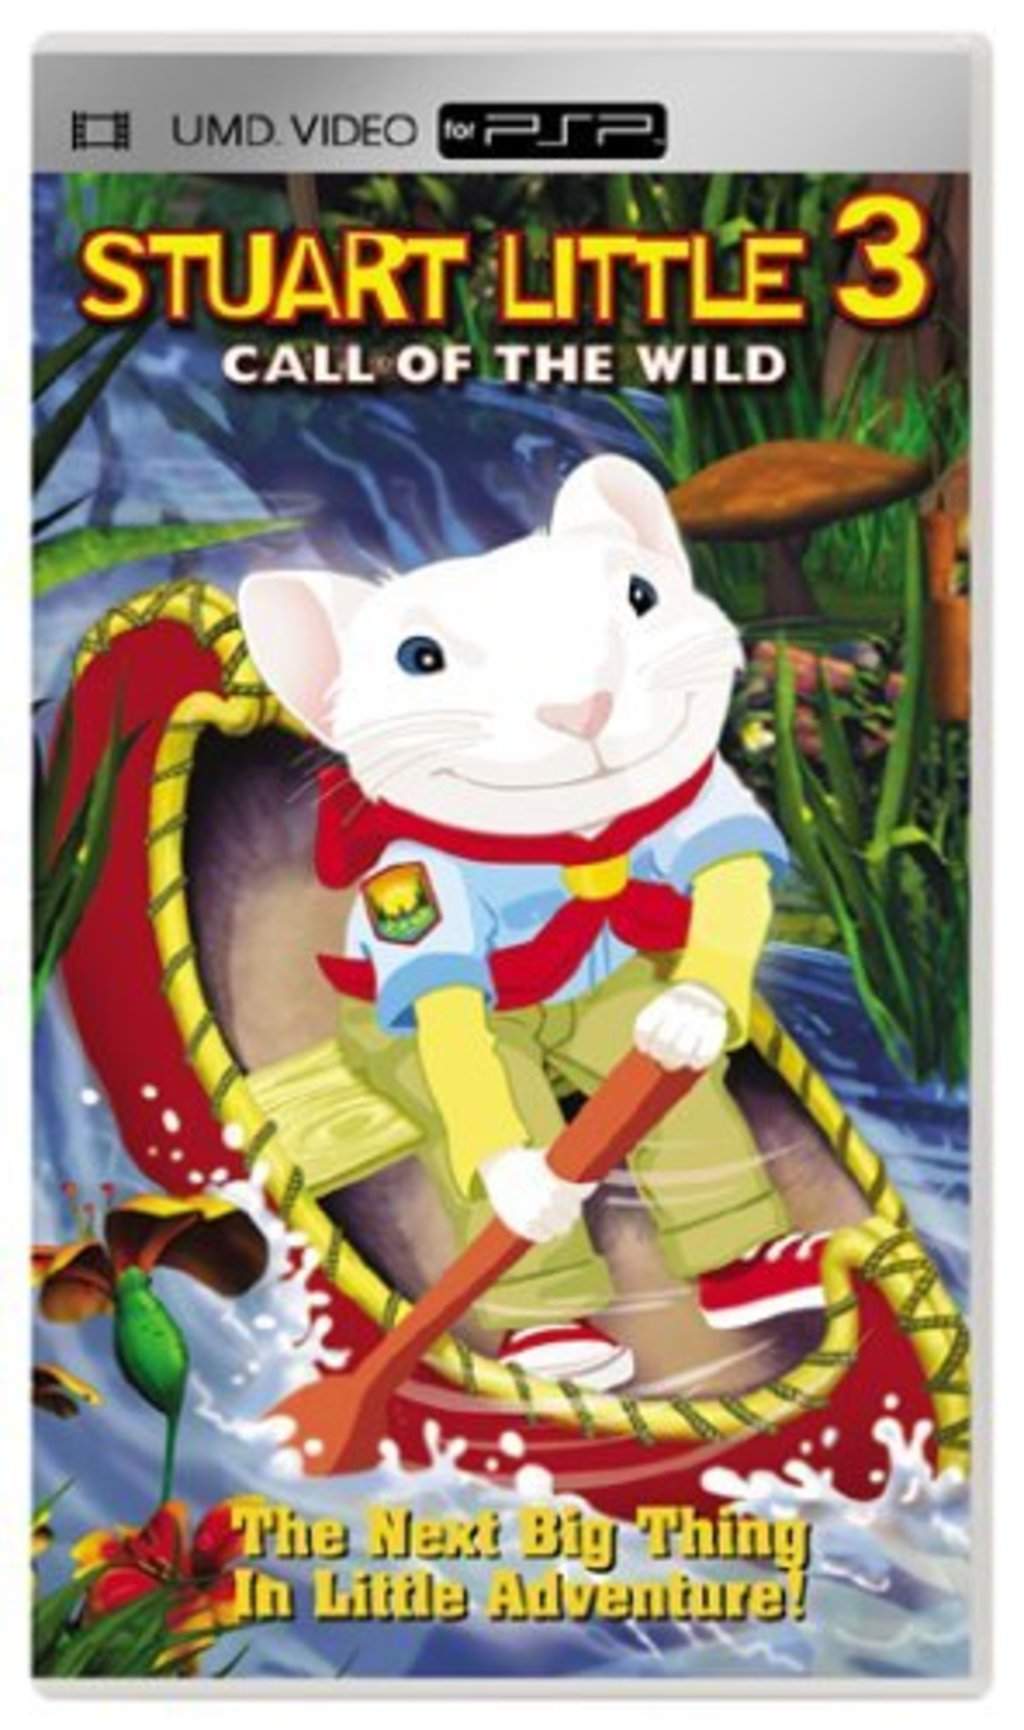 Watch Stuart Little 3 Call Of The Wild On Netflix Today